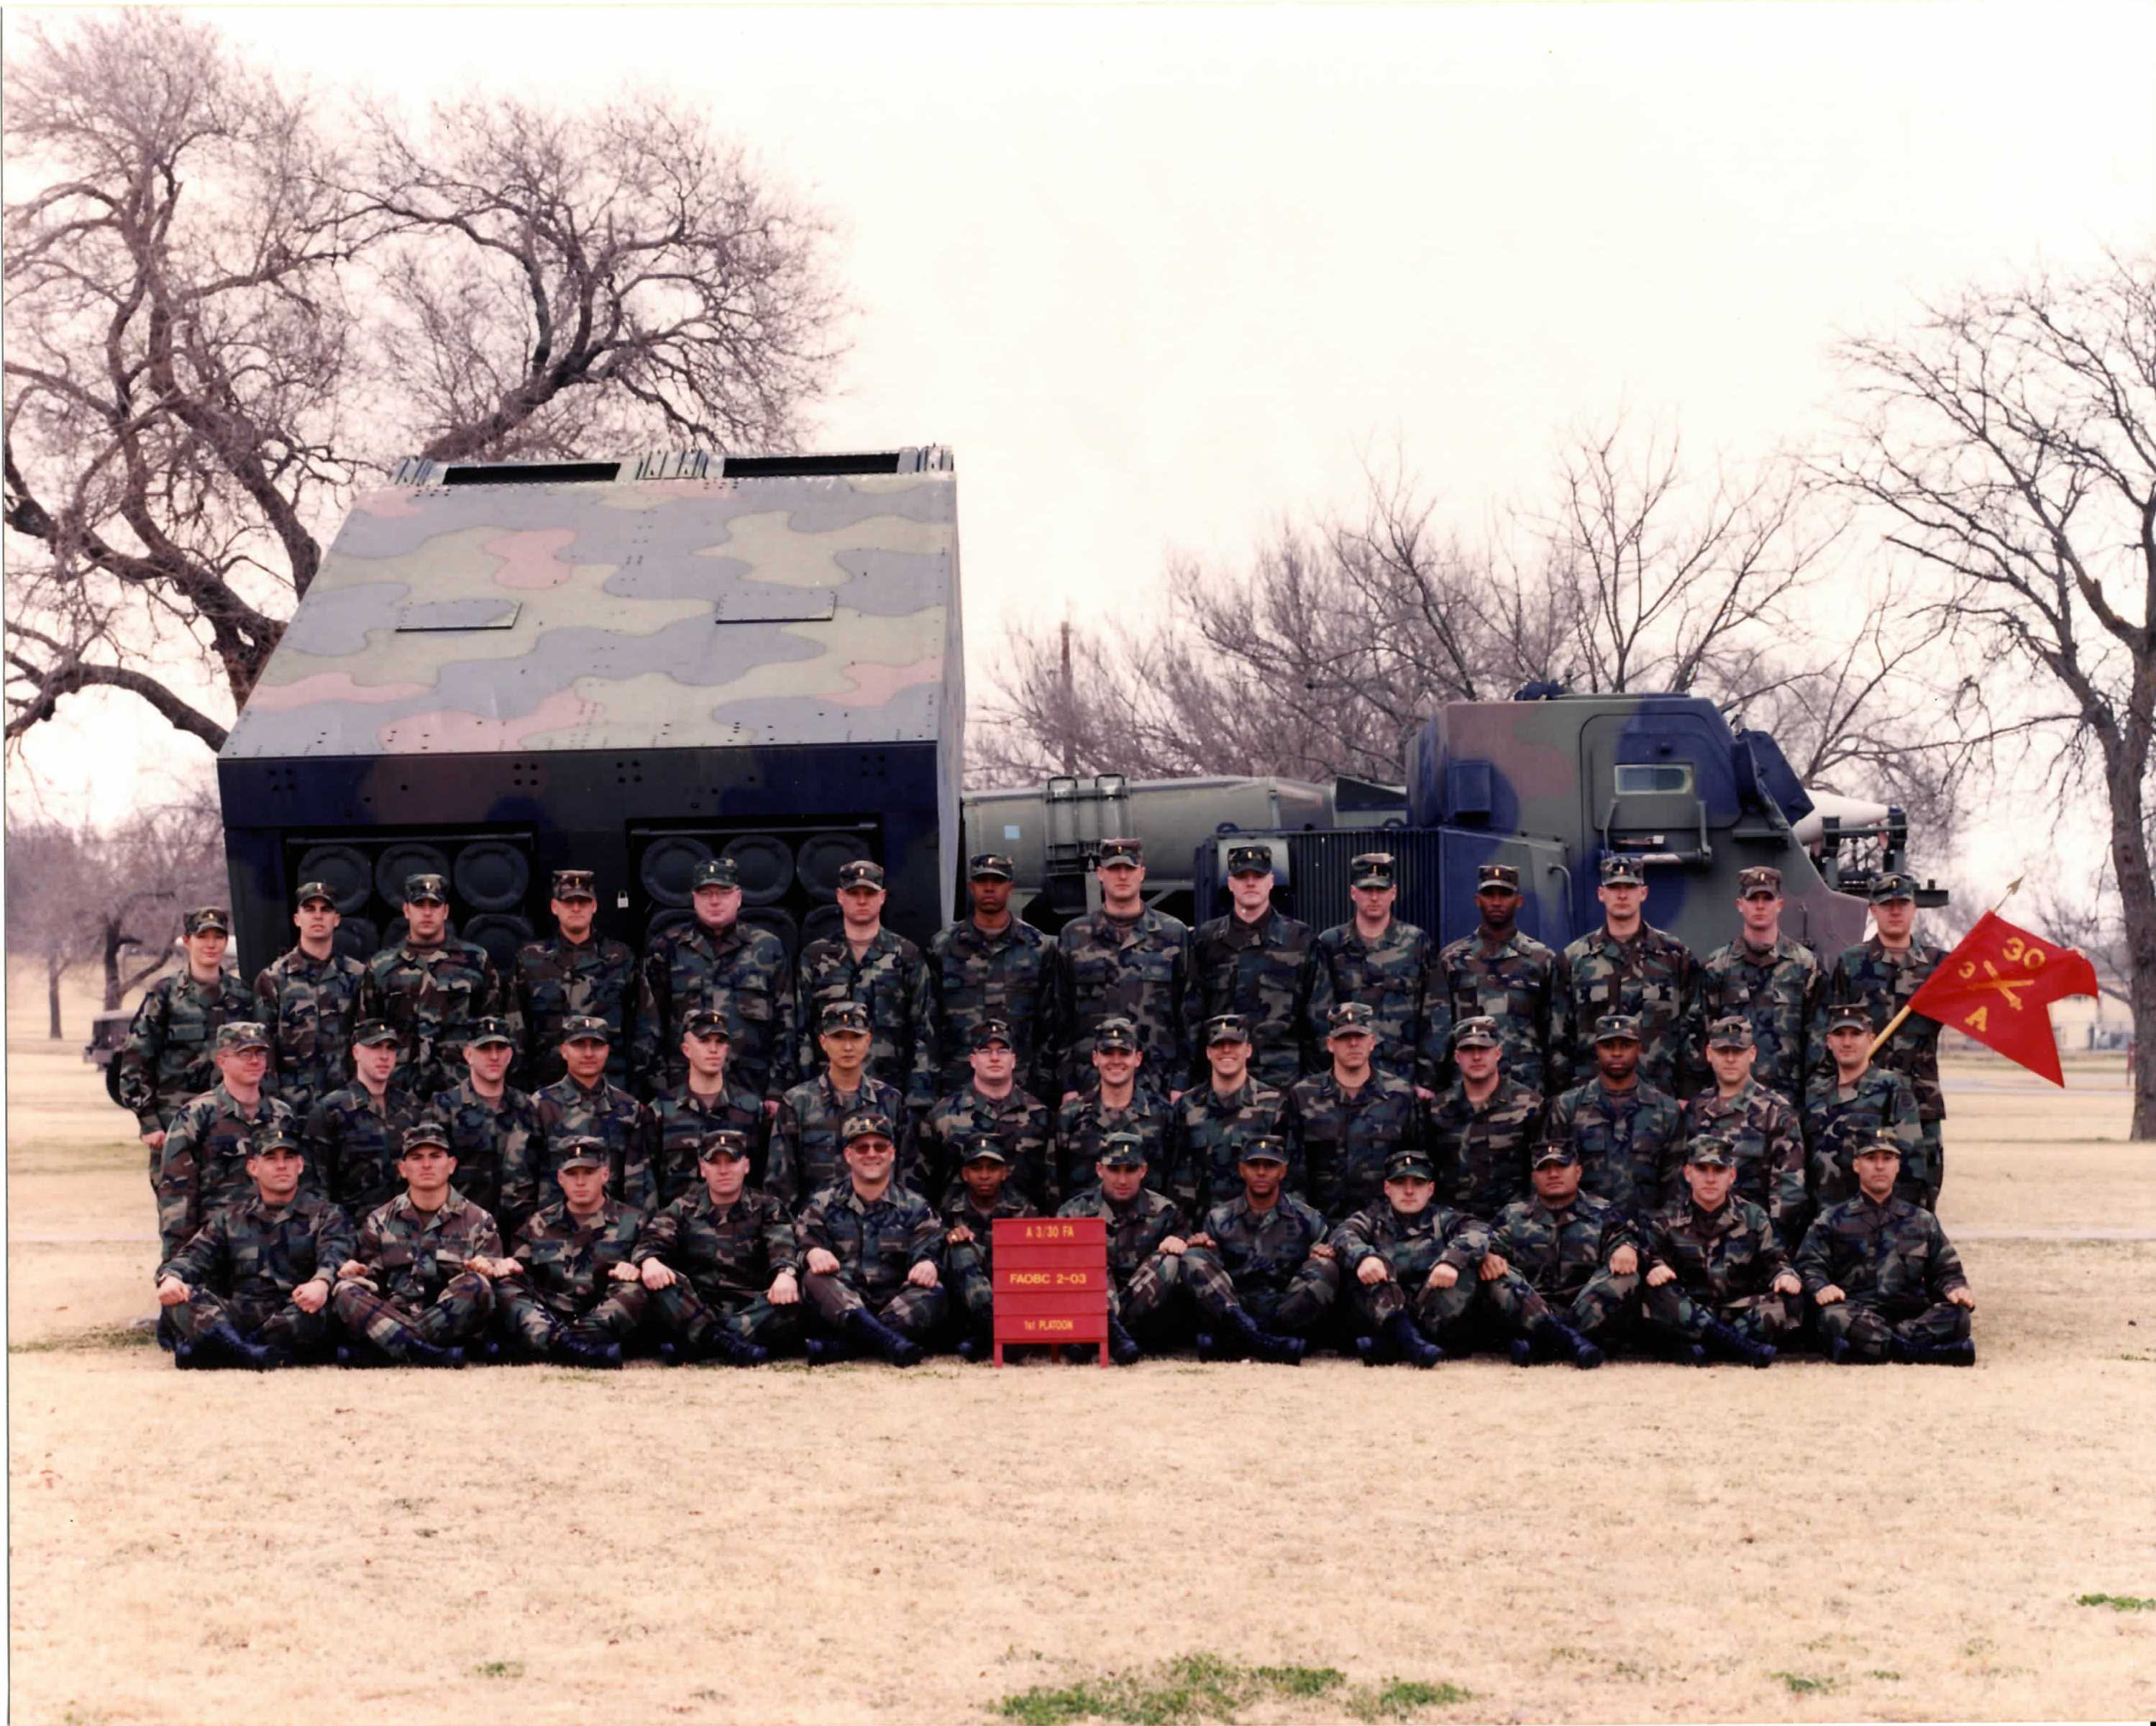 Kosovych's 1st Platoon at Field Artillery Officer Basic Course (FAOBC) with Multiple Launch Rocket System (MLRS)